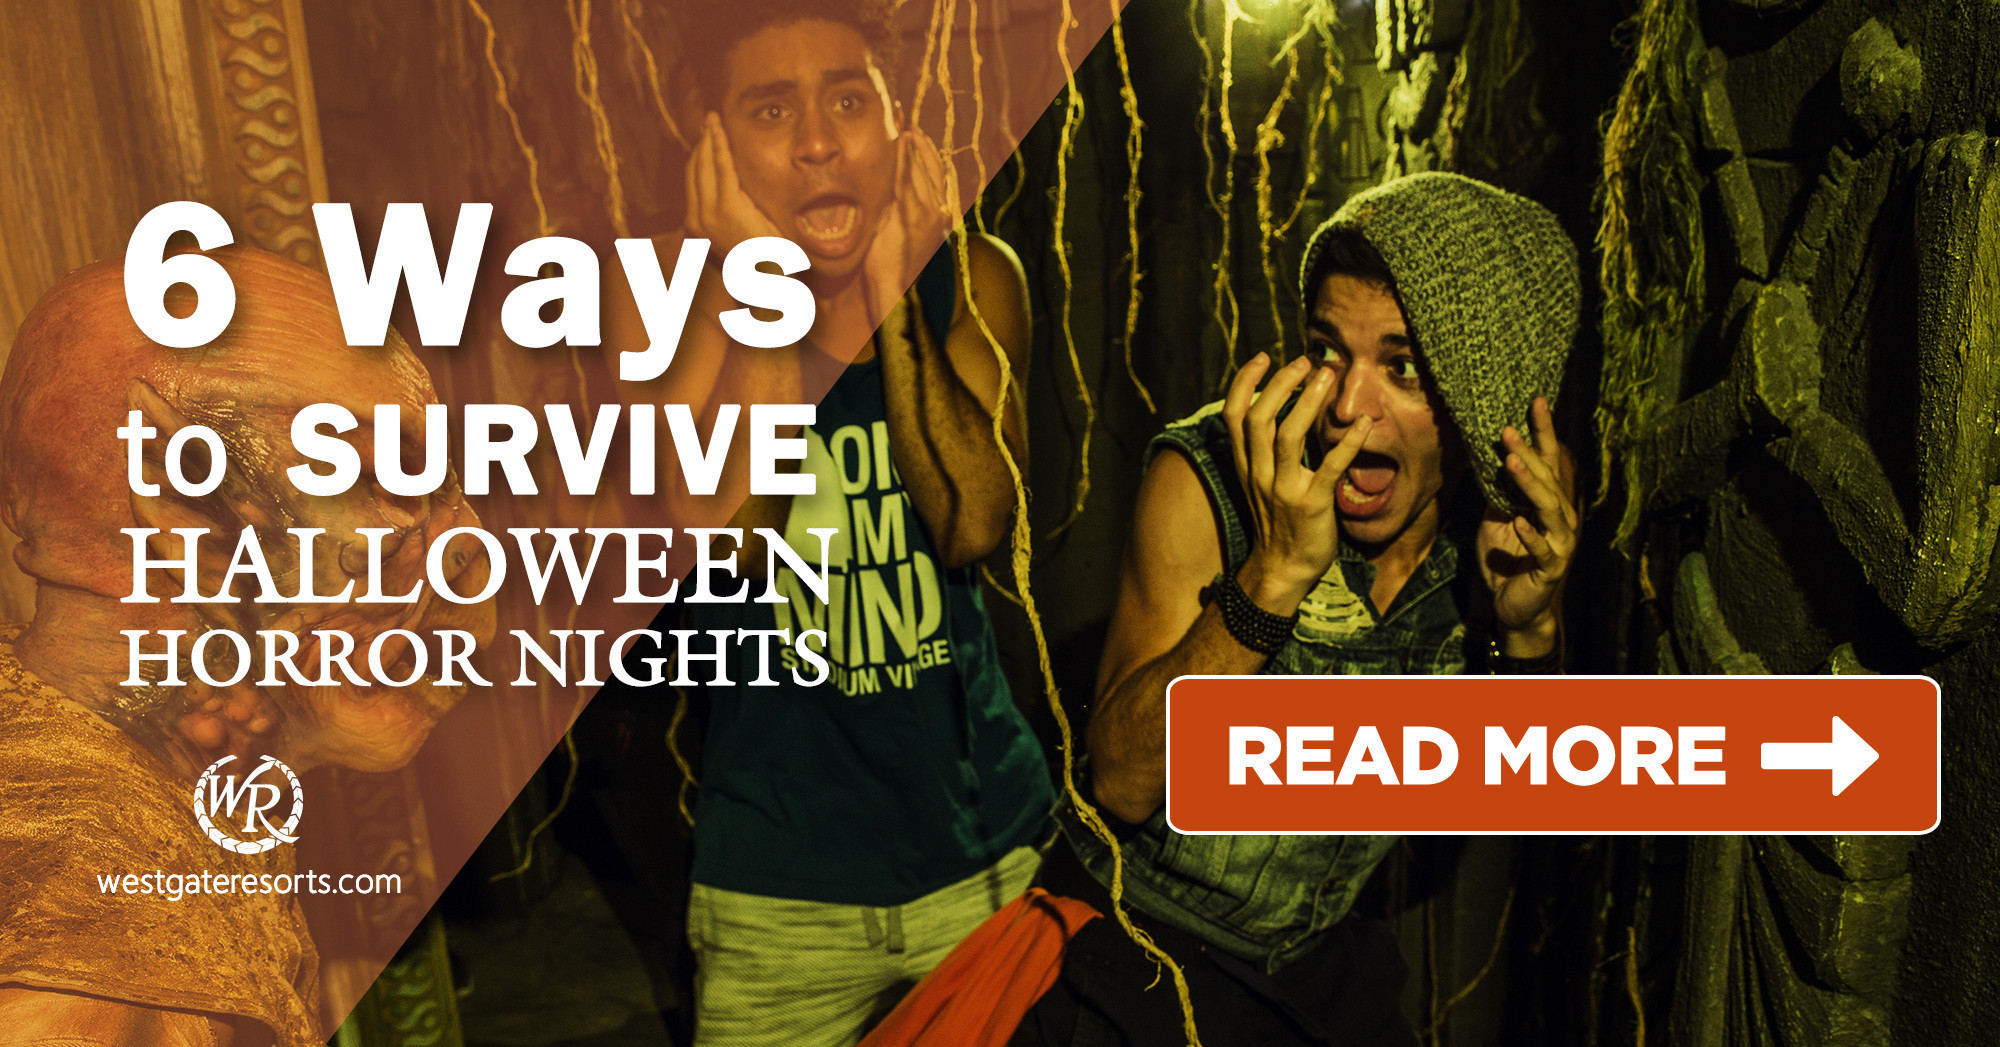 6 Ways to Survive Halloween Horror Nights Wait Times in Orlando for 2018 | Halloween Horror Nights - Universal Studios Orlando | Westgate Resorts